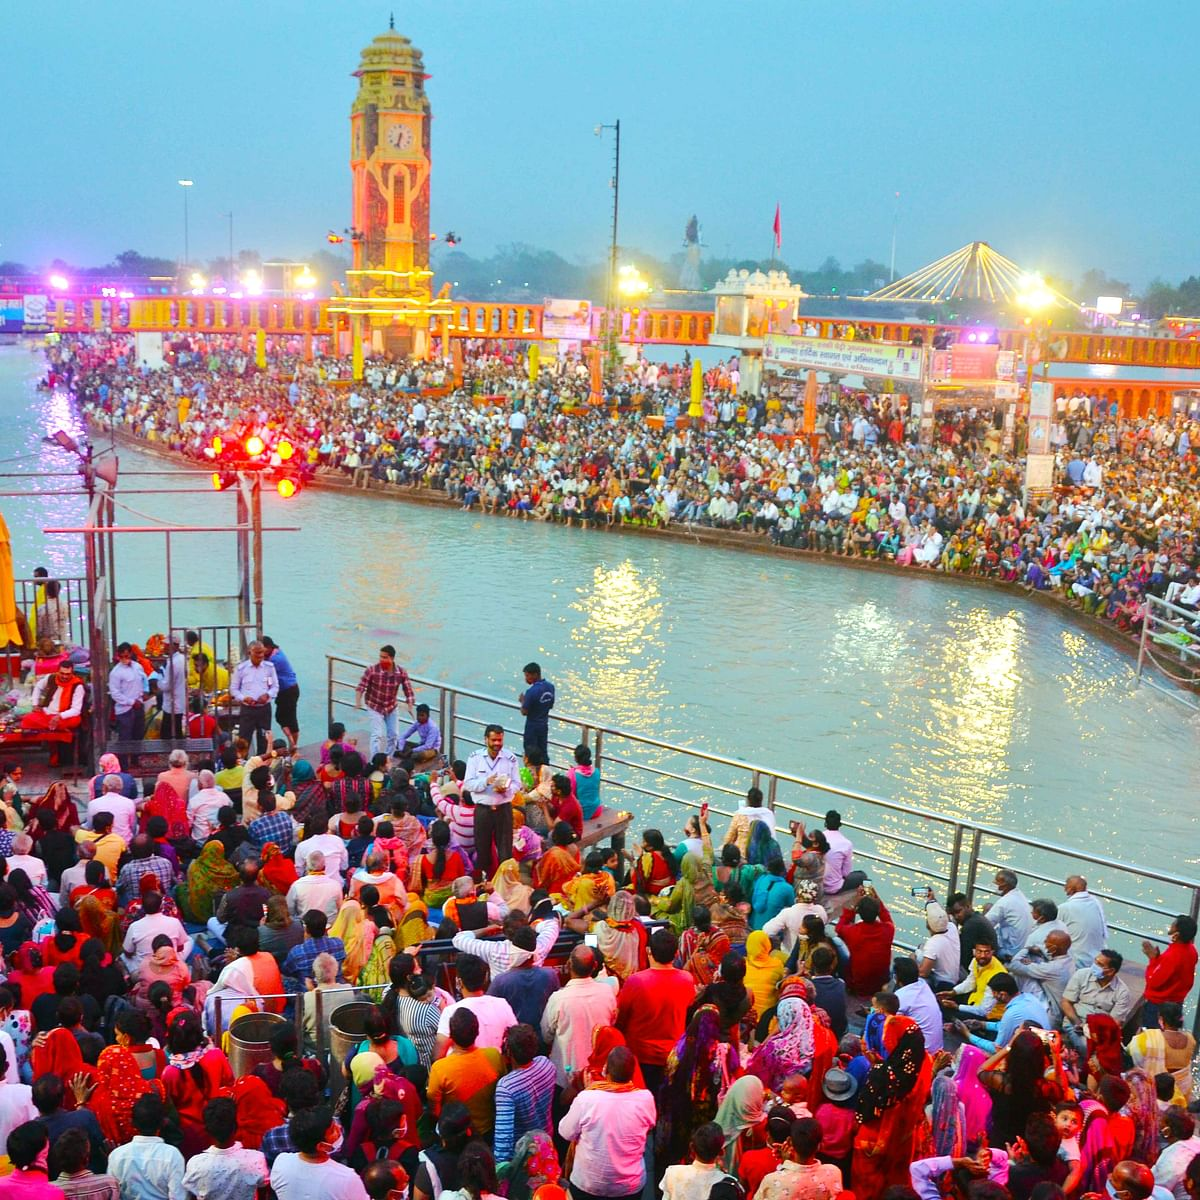 PM Modi suggests early end to Kumbh Mela in wake of COVID-19 pandemic